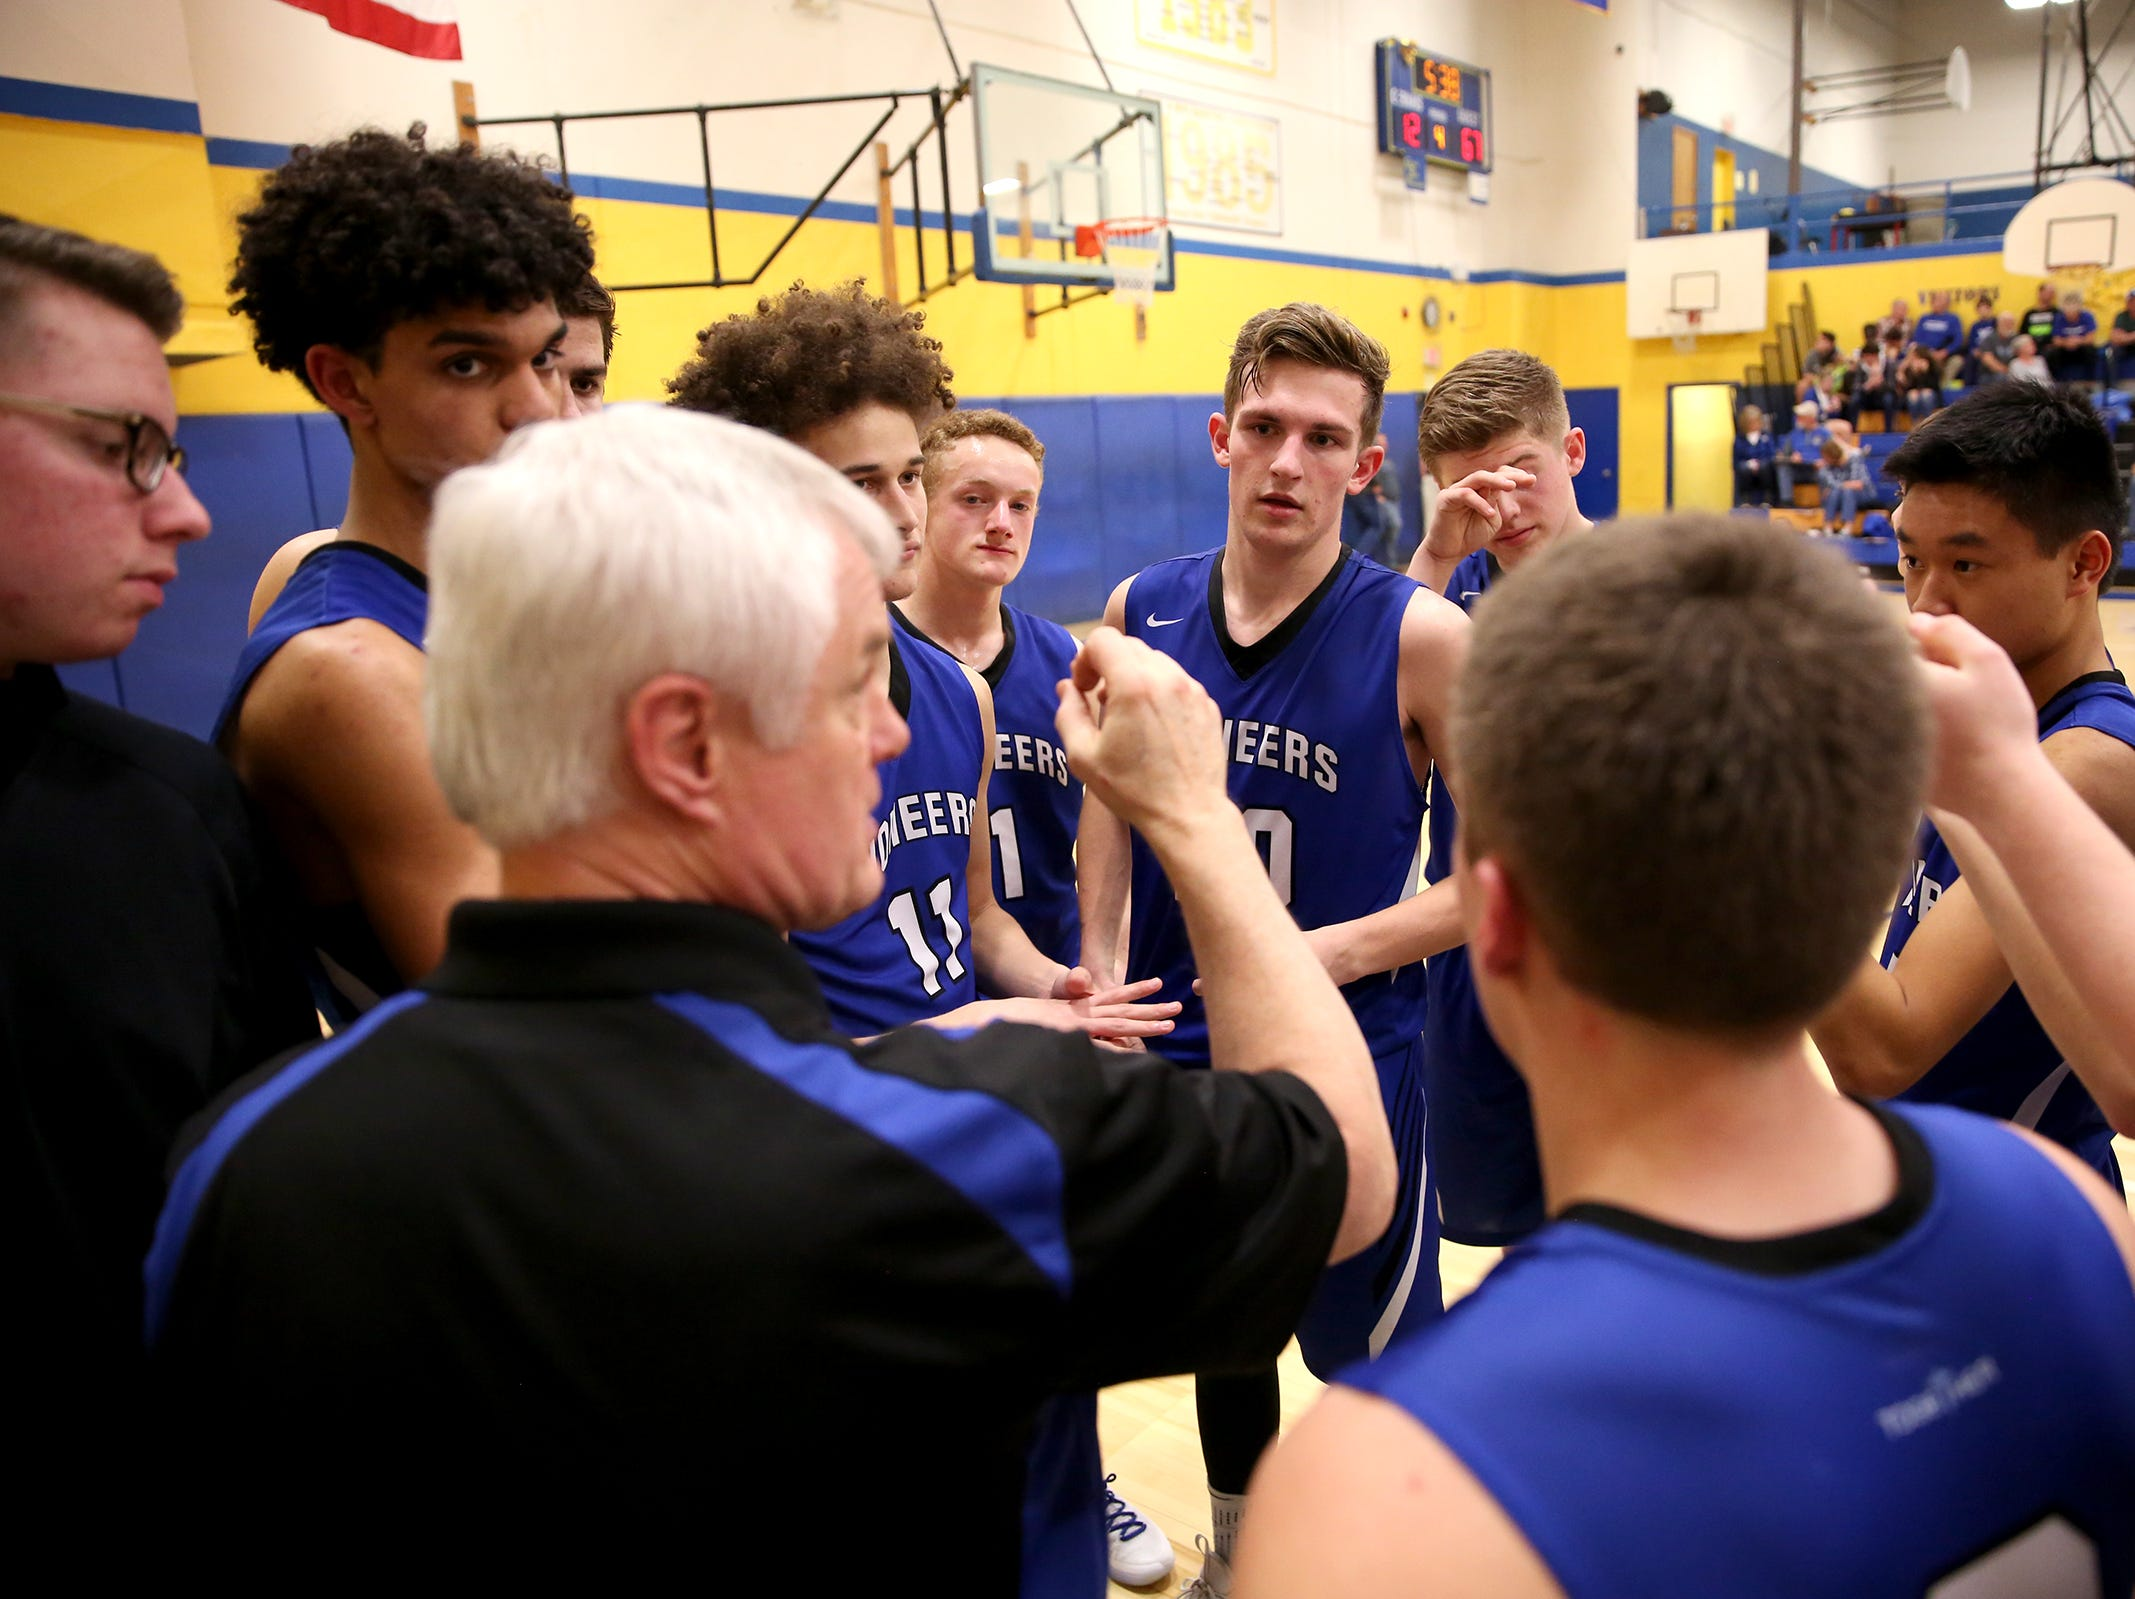 Western Christian huddles during the Gervais High School boys basketball game against Western Christian in Gervais on Friday, Feb. 1, 2019.